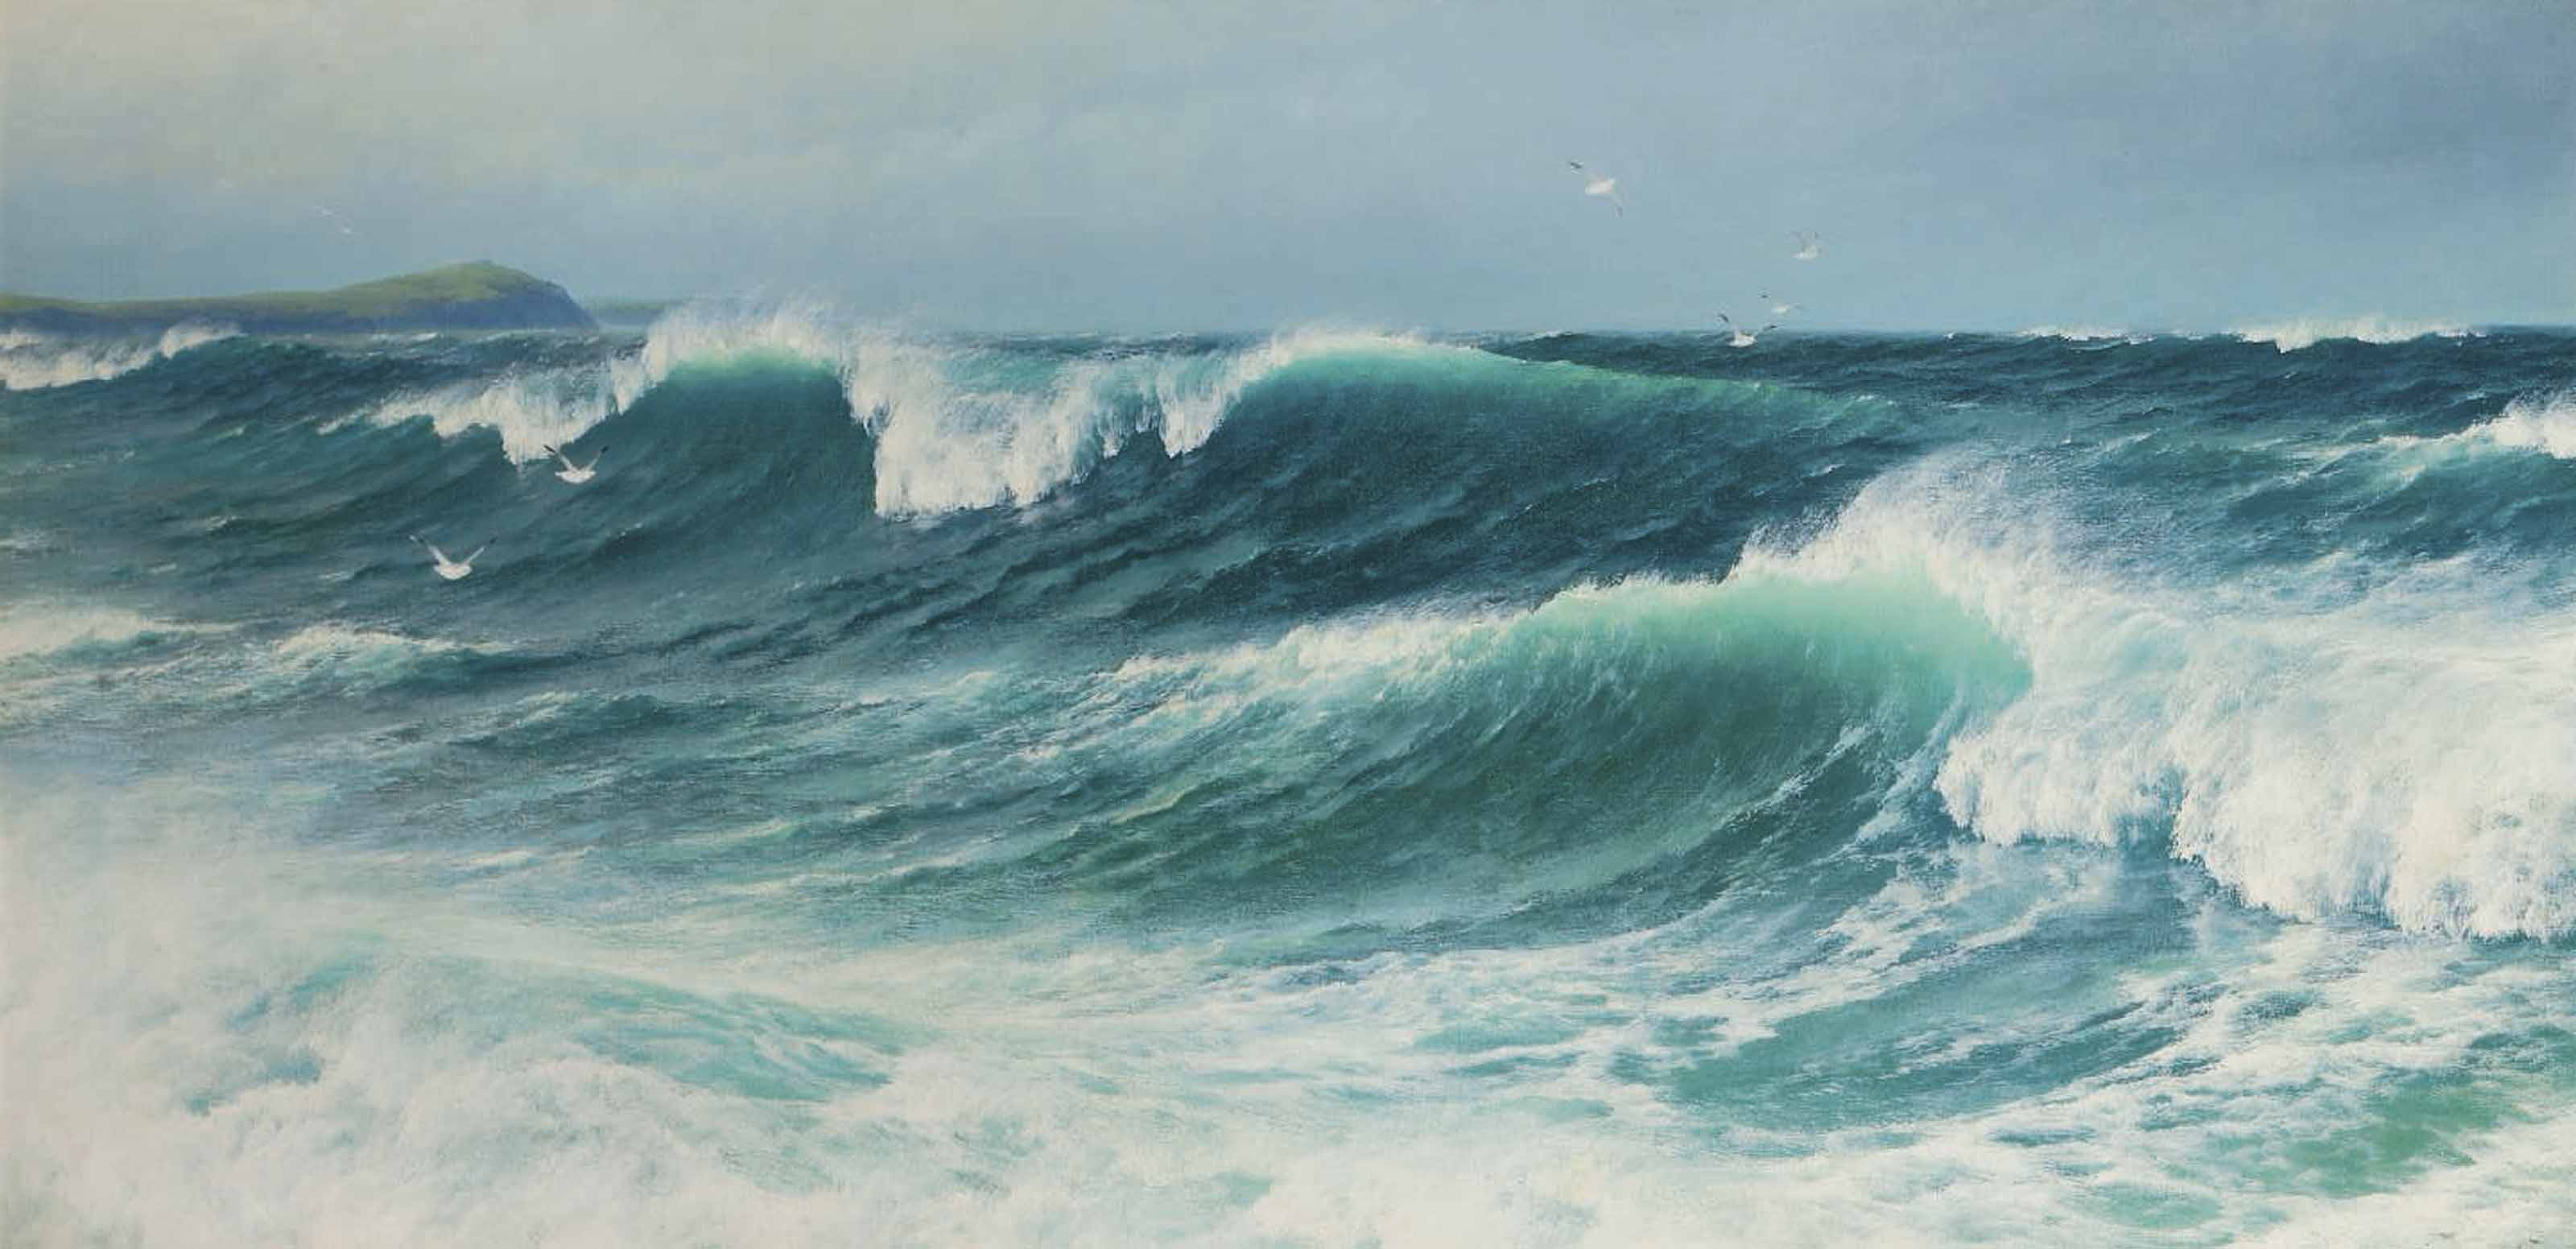 The inrushing tide